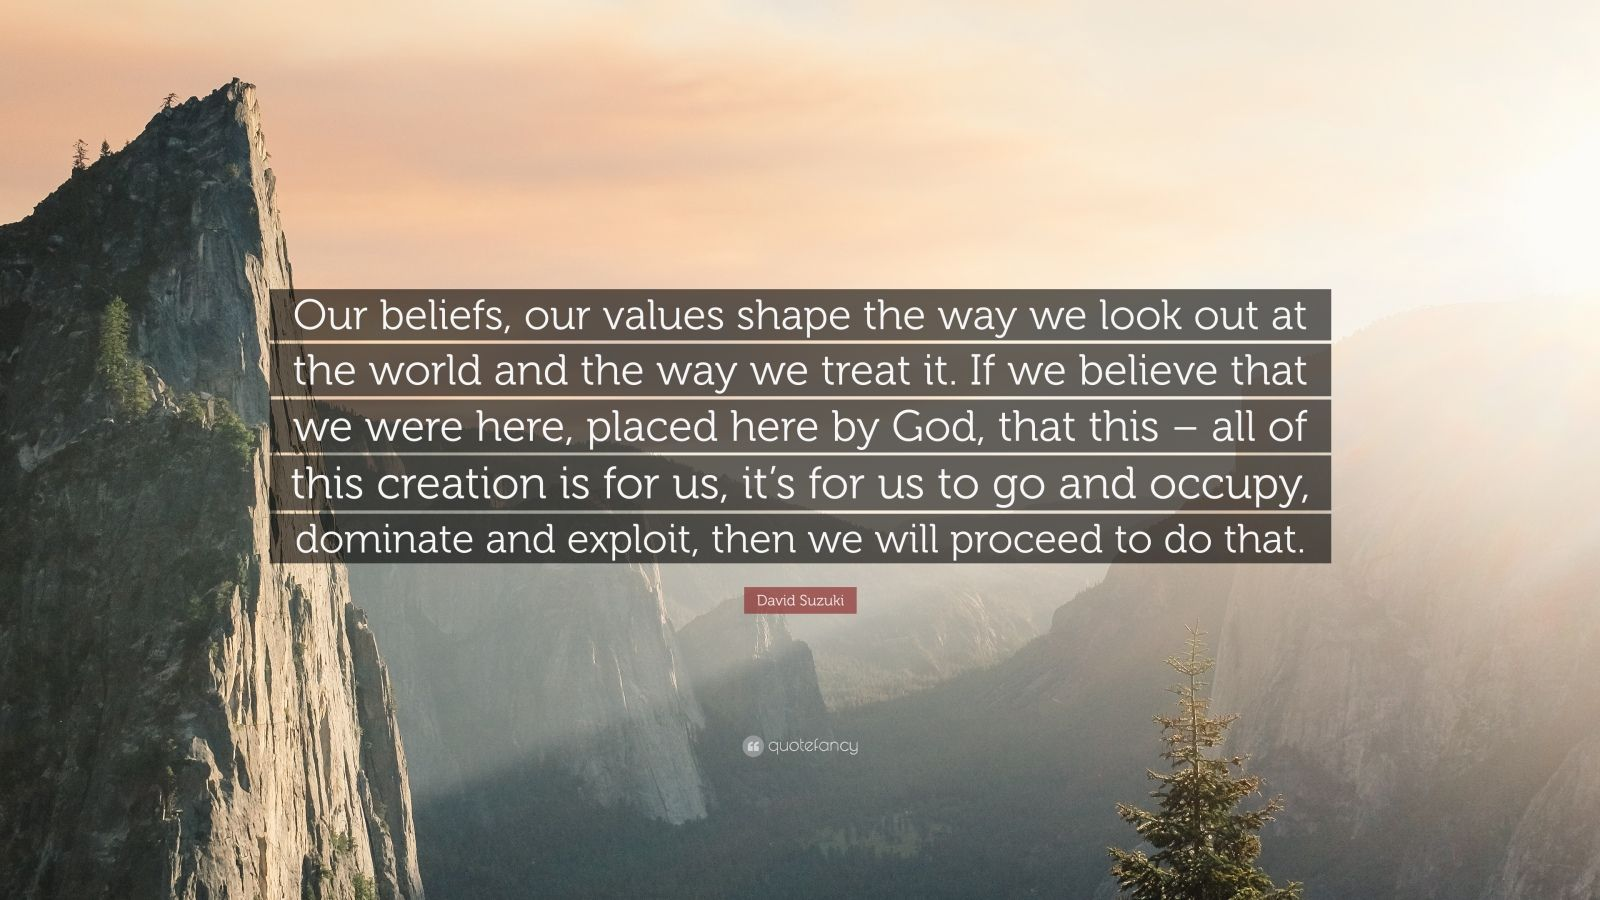 """David Suzuki Quote: """"Our beliefs, our values shape the way we look out at the world and the way we treat it. If we believe that we were here, placed here by God, that this – all of this creation is for us, it's for us to go and occupy, dominate and exploit, then we will proceed to do that."""""""